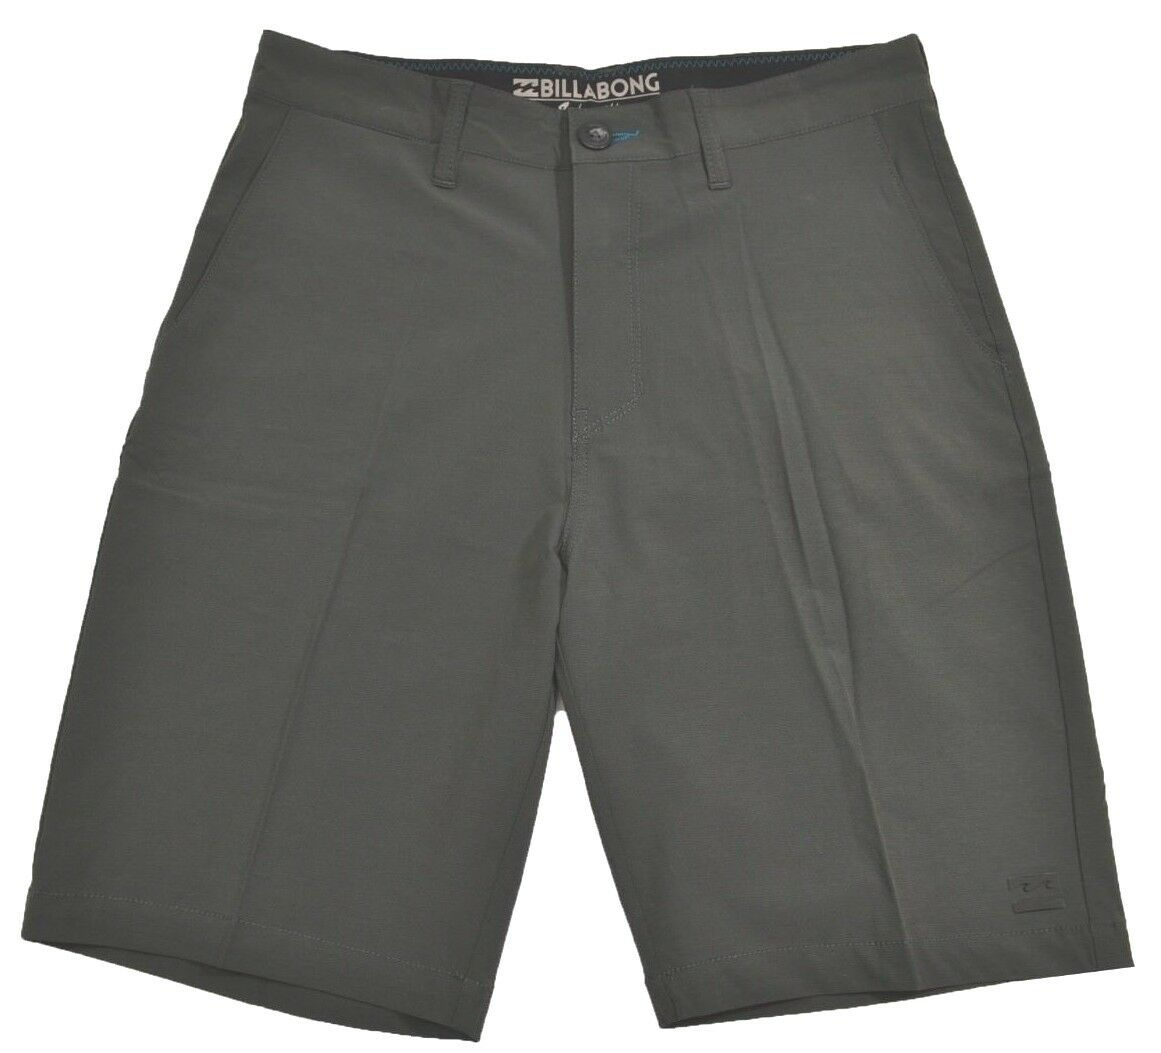 Billabong CROSSFIRE X Asphalt 4-Way Stretch Submersibles M201ACRO Men's Shorts